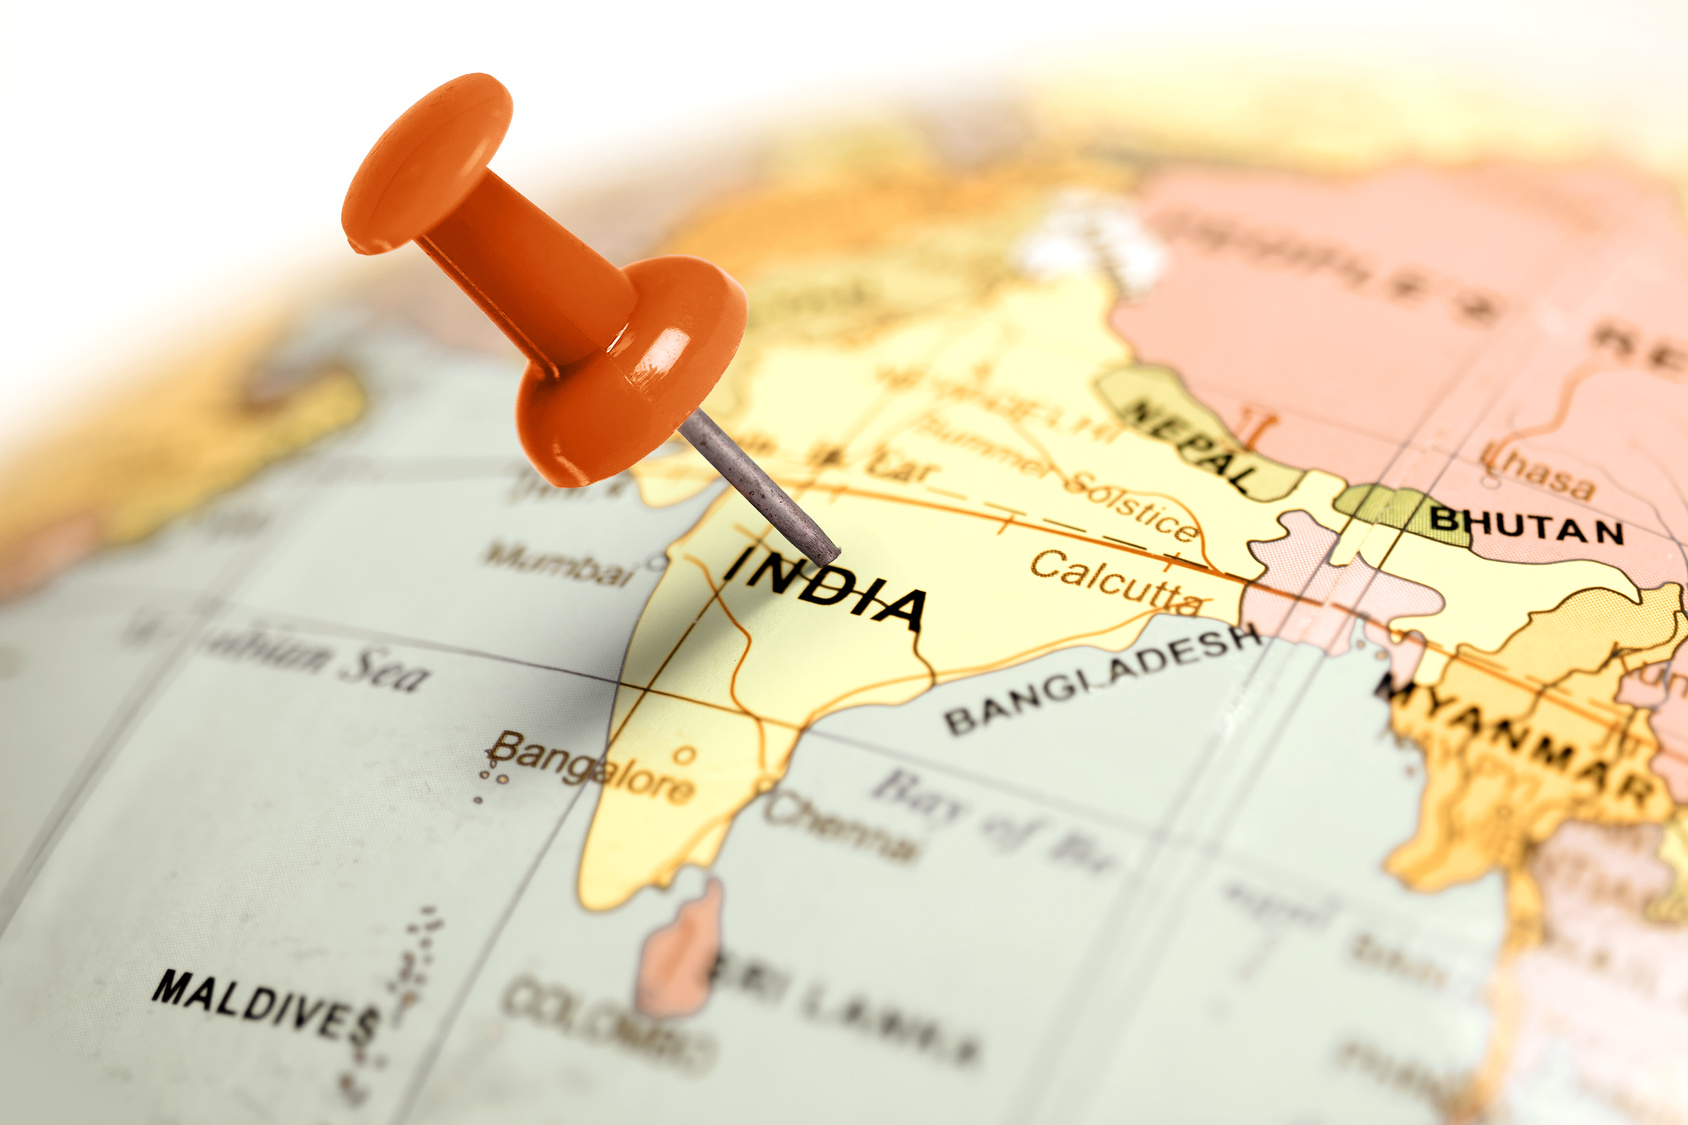 Location India Red Pin On The Map Telecoms Com